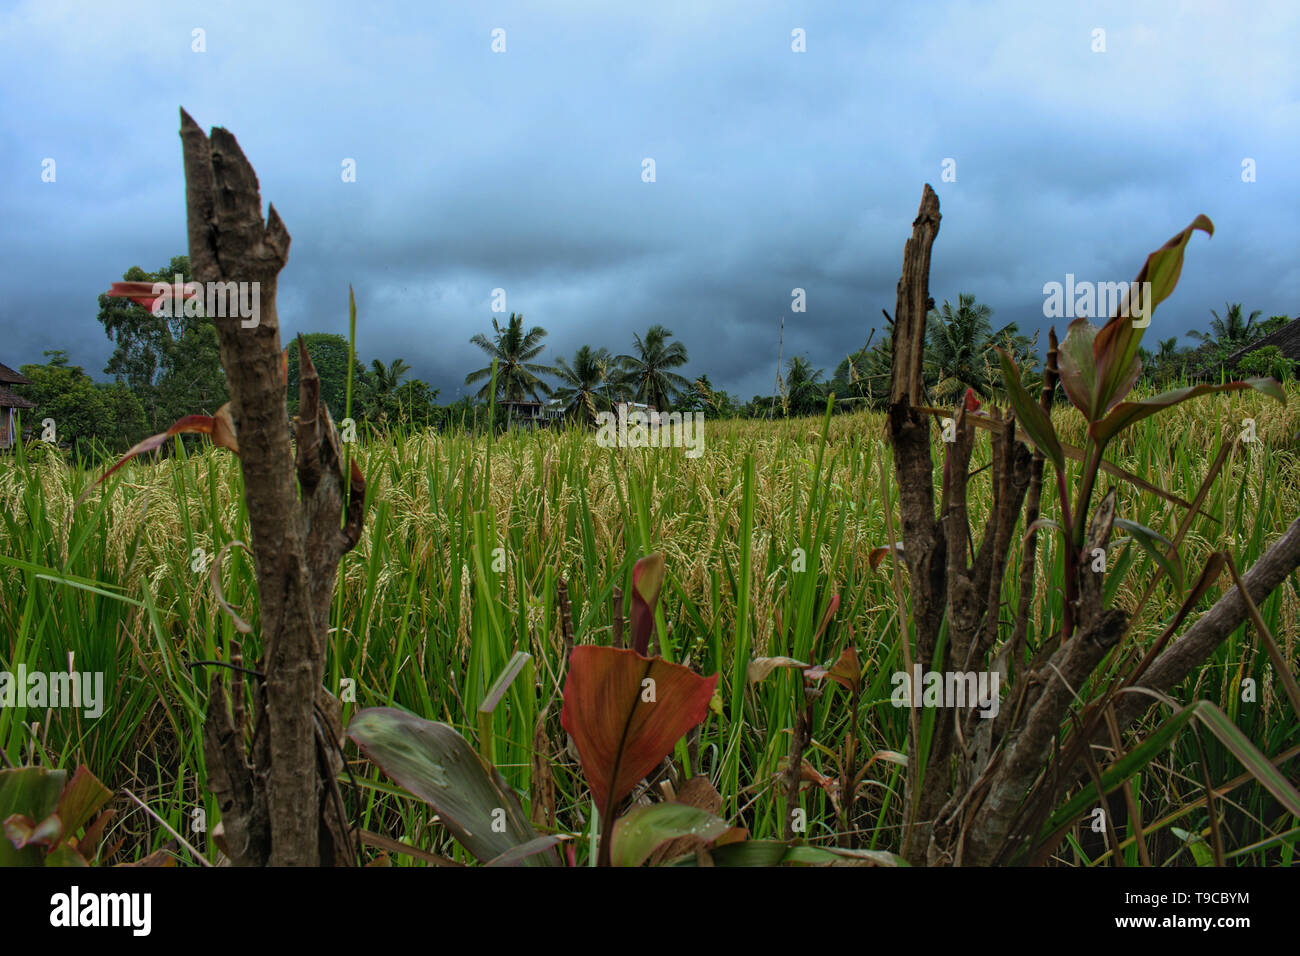 Rice Paddy with Clouds at Campuhan Ridge Walk in Ubud, Bali, Indonesia - Stock Image